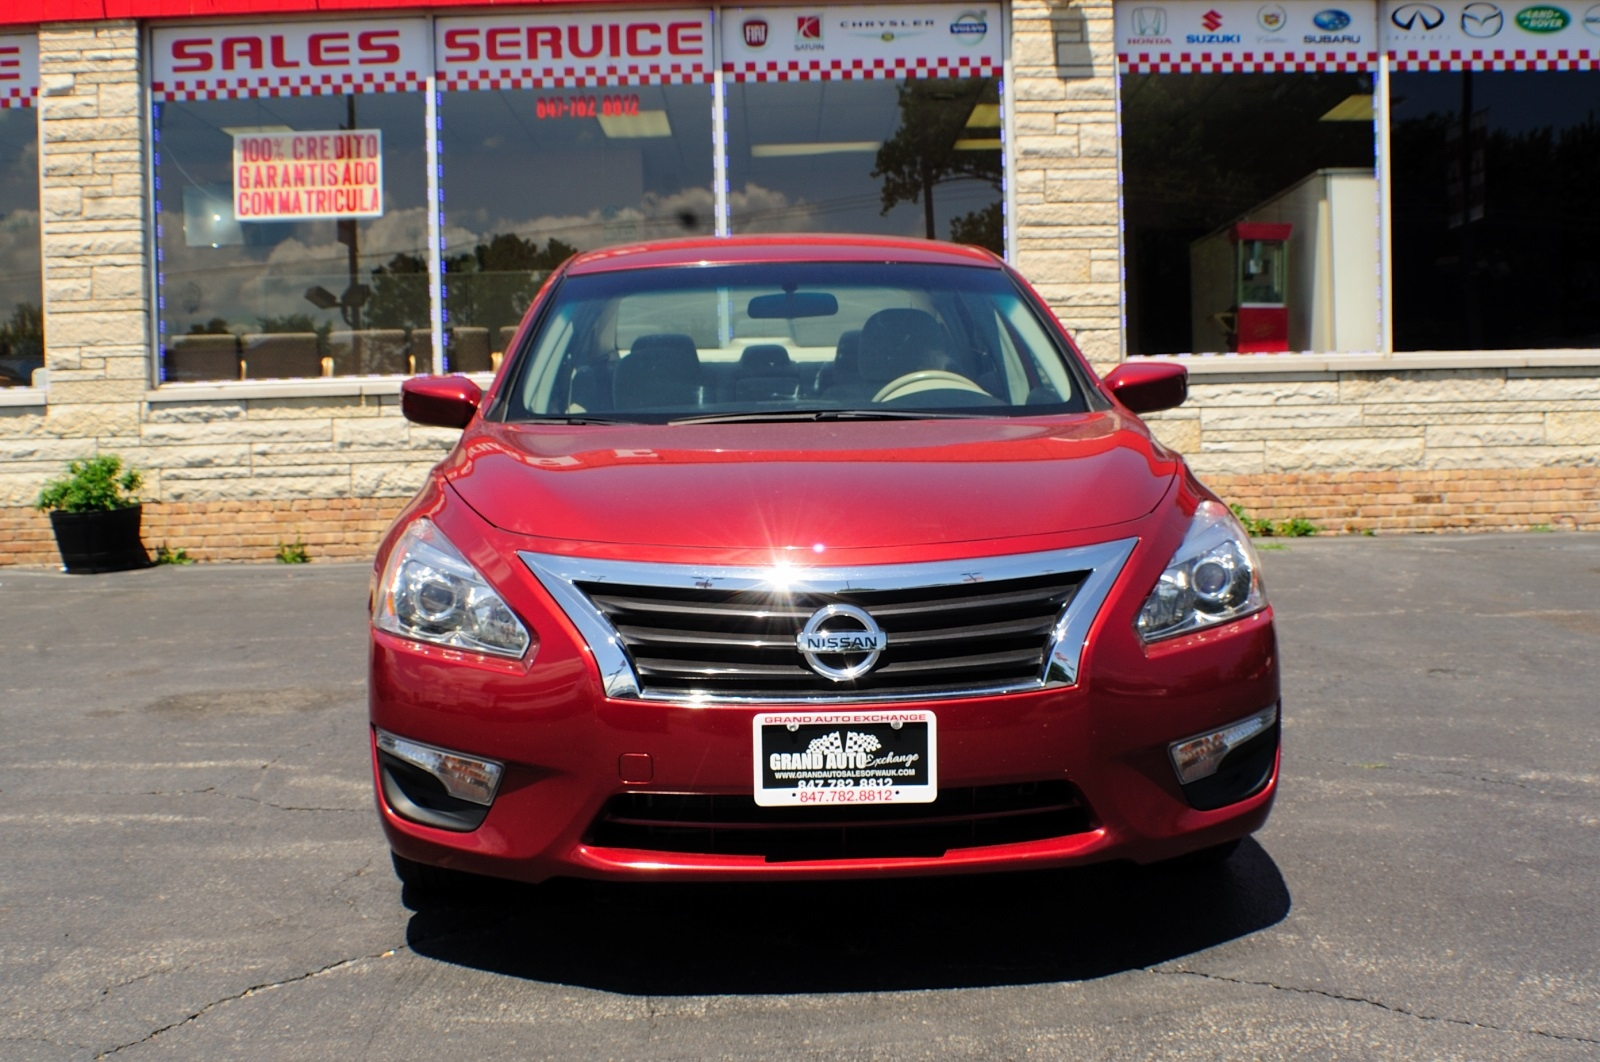 2013 Nissan Altima Red SV Sedan used car sale Gurnee Kenosha Mchenry Chicago Illinois